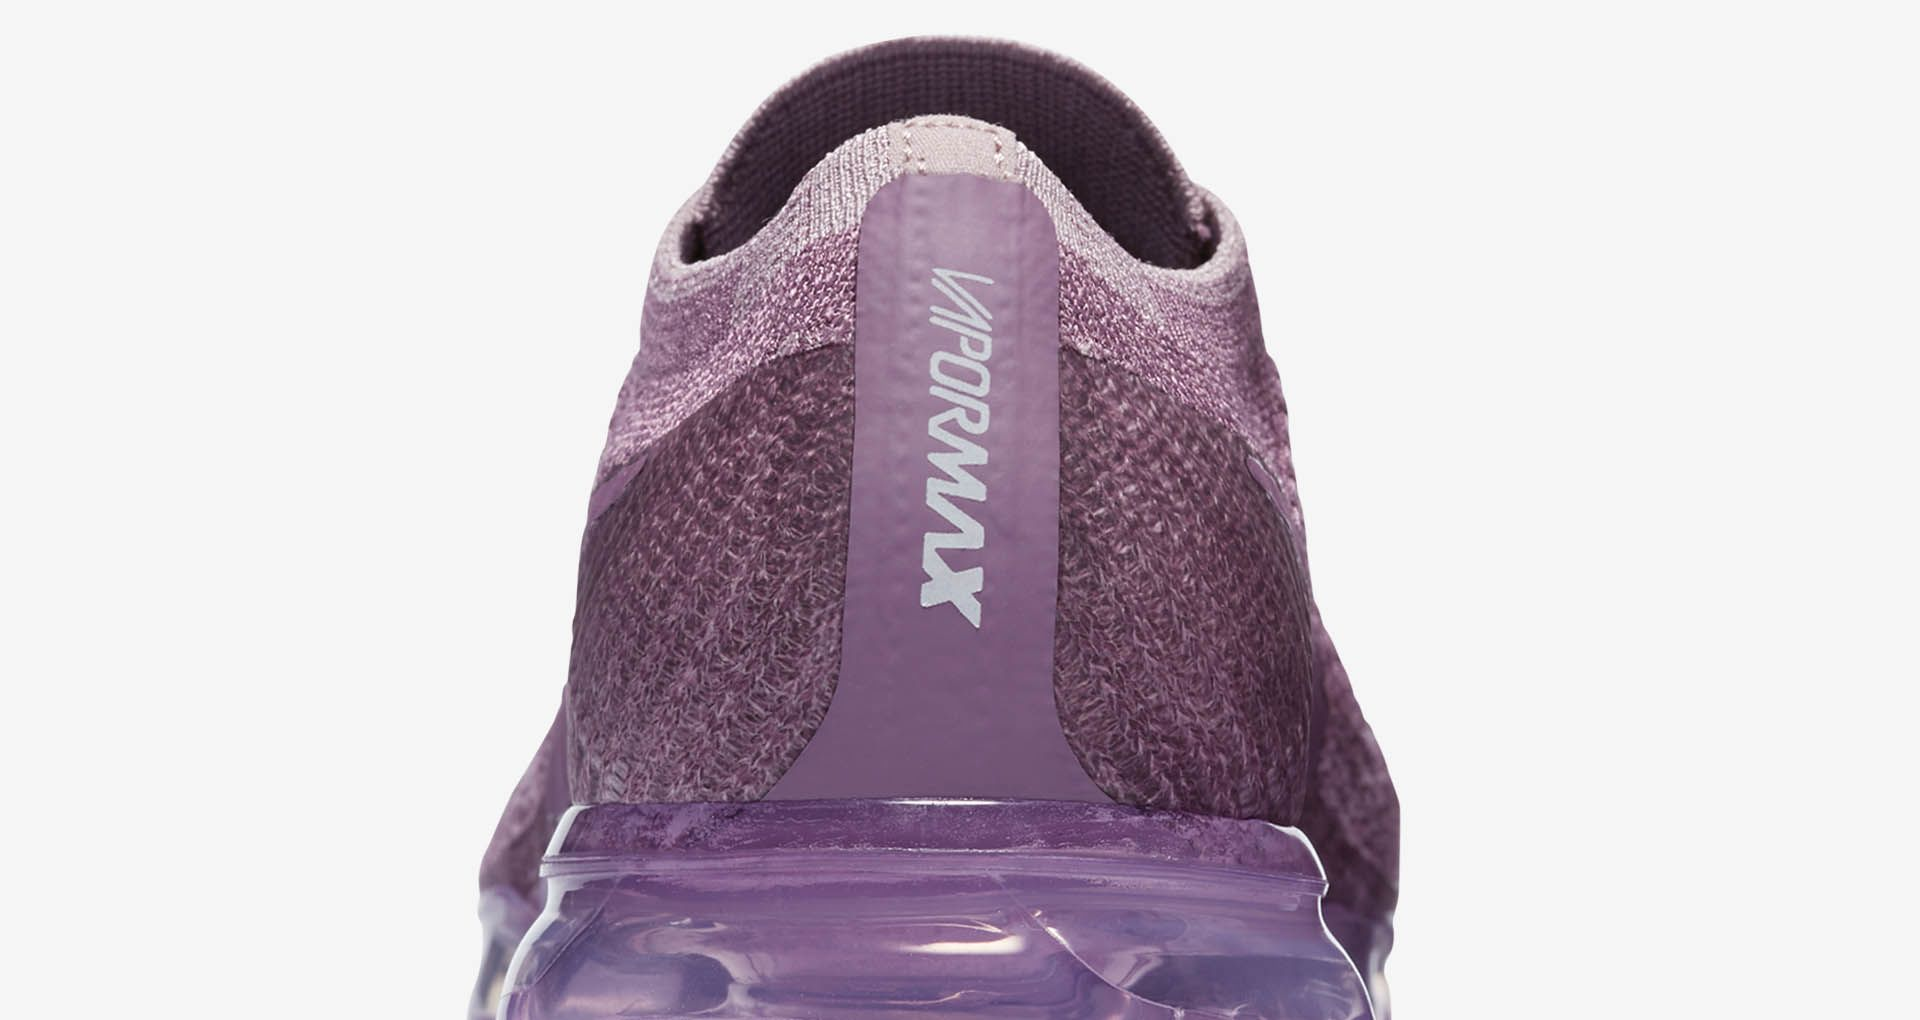 Women's Nike Air VaporMax Flyknit Day to Night 'Violet Dust